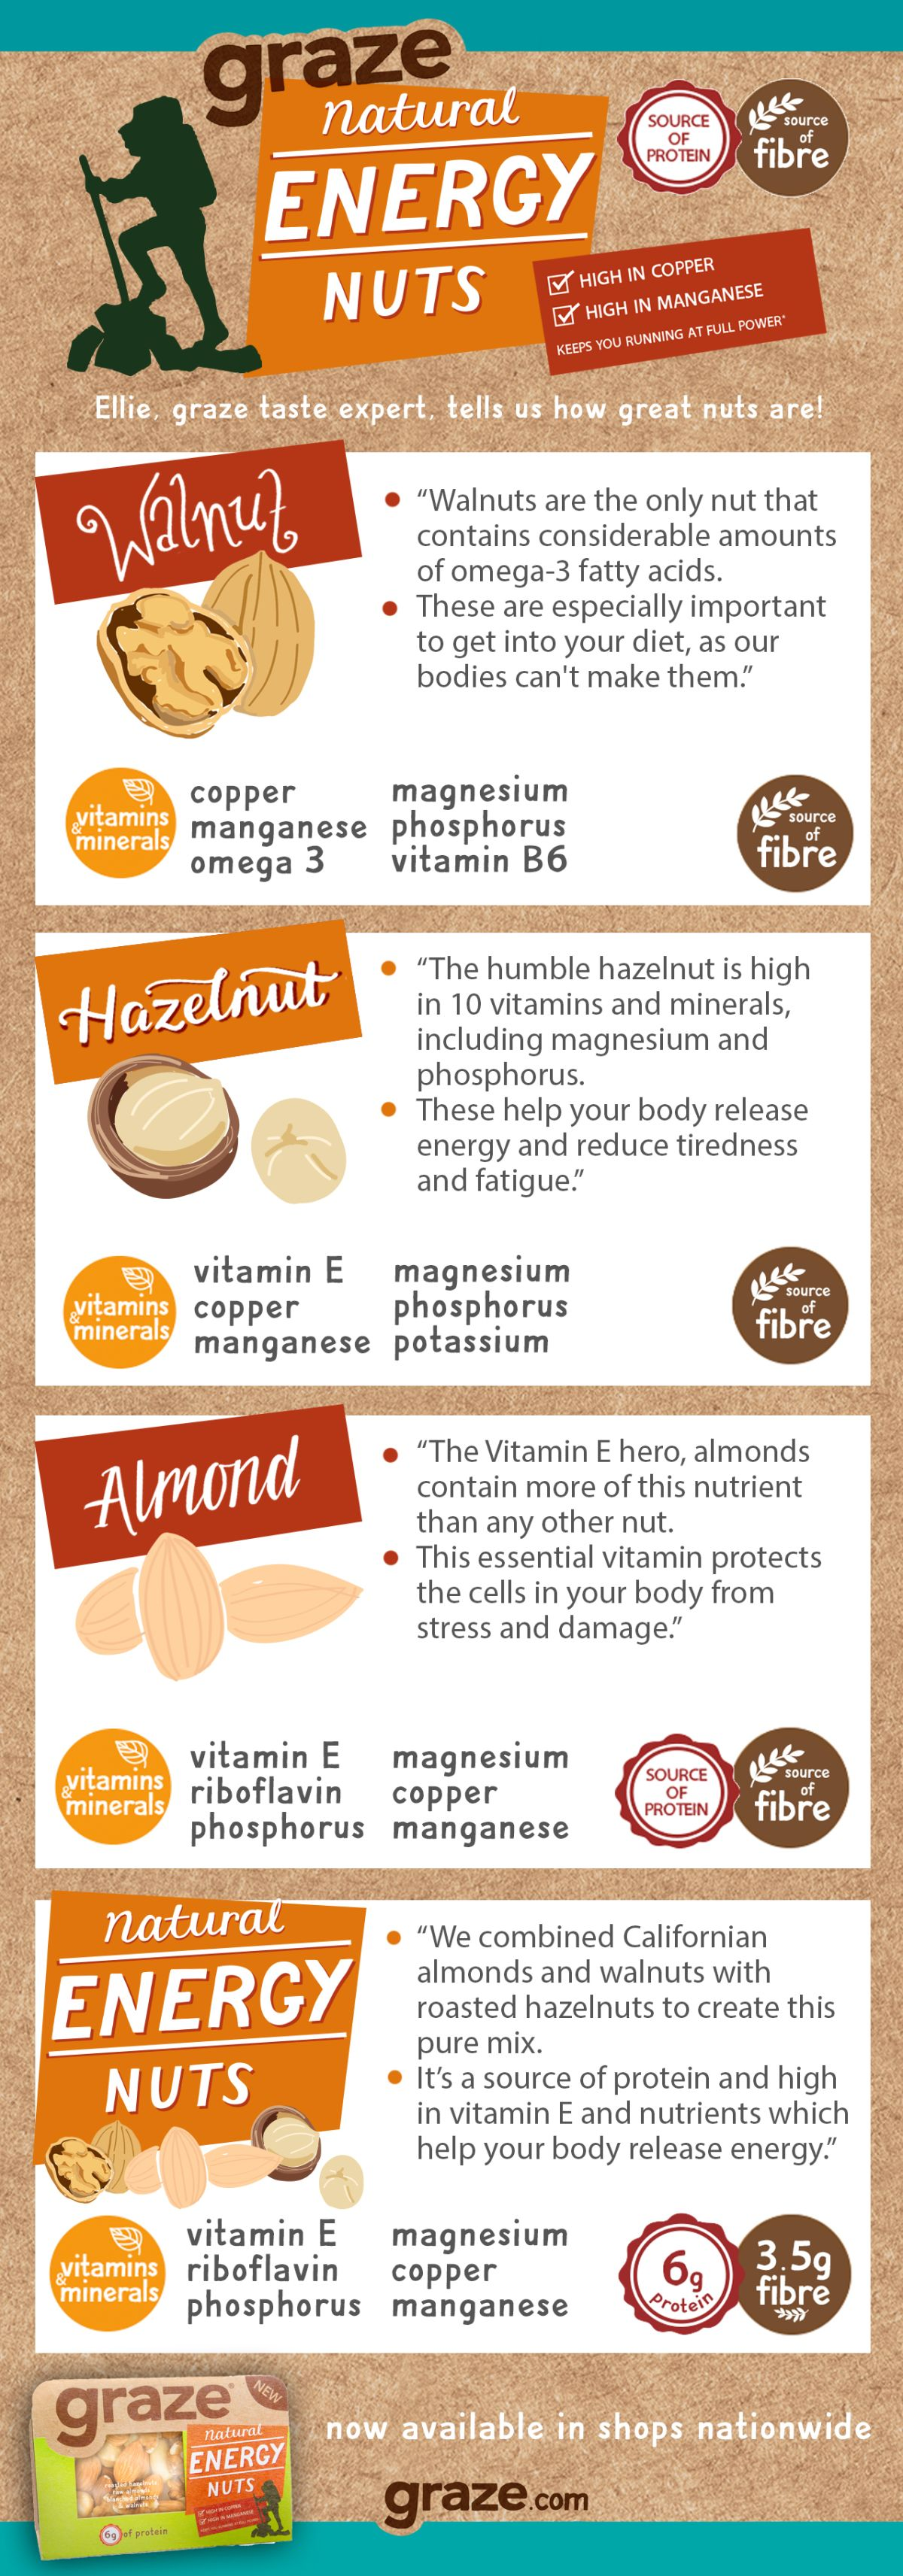 natural energy nuts infographic